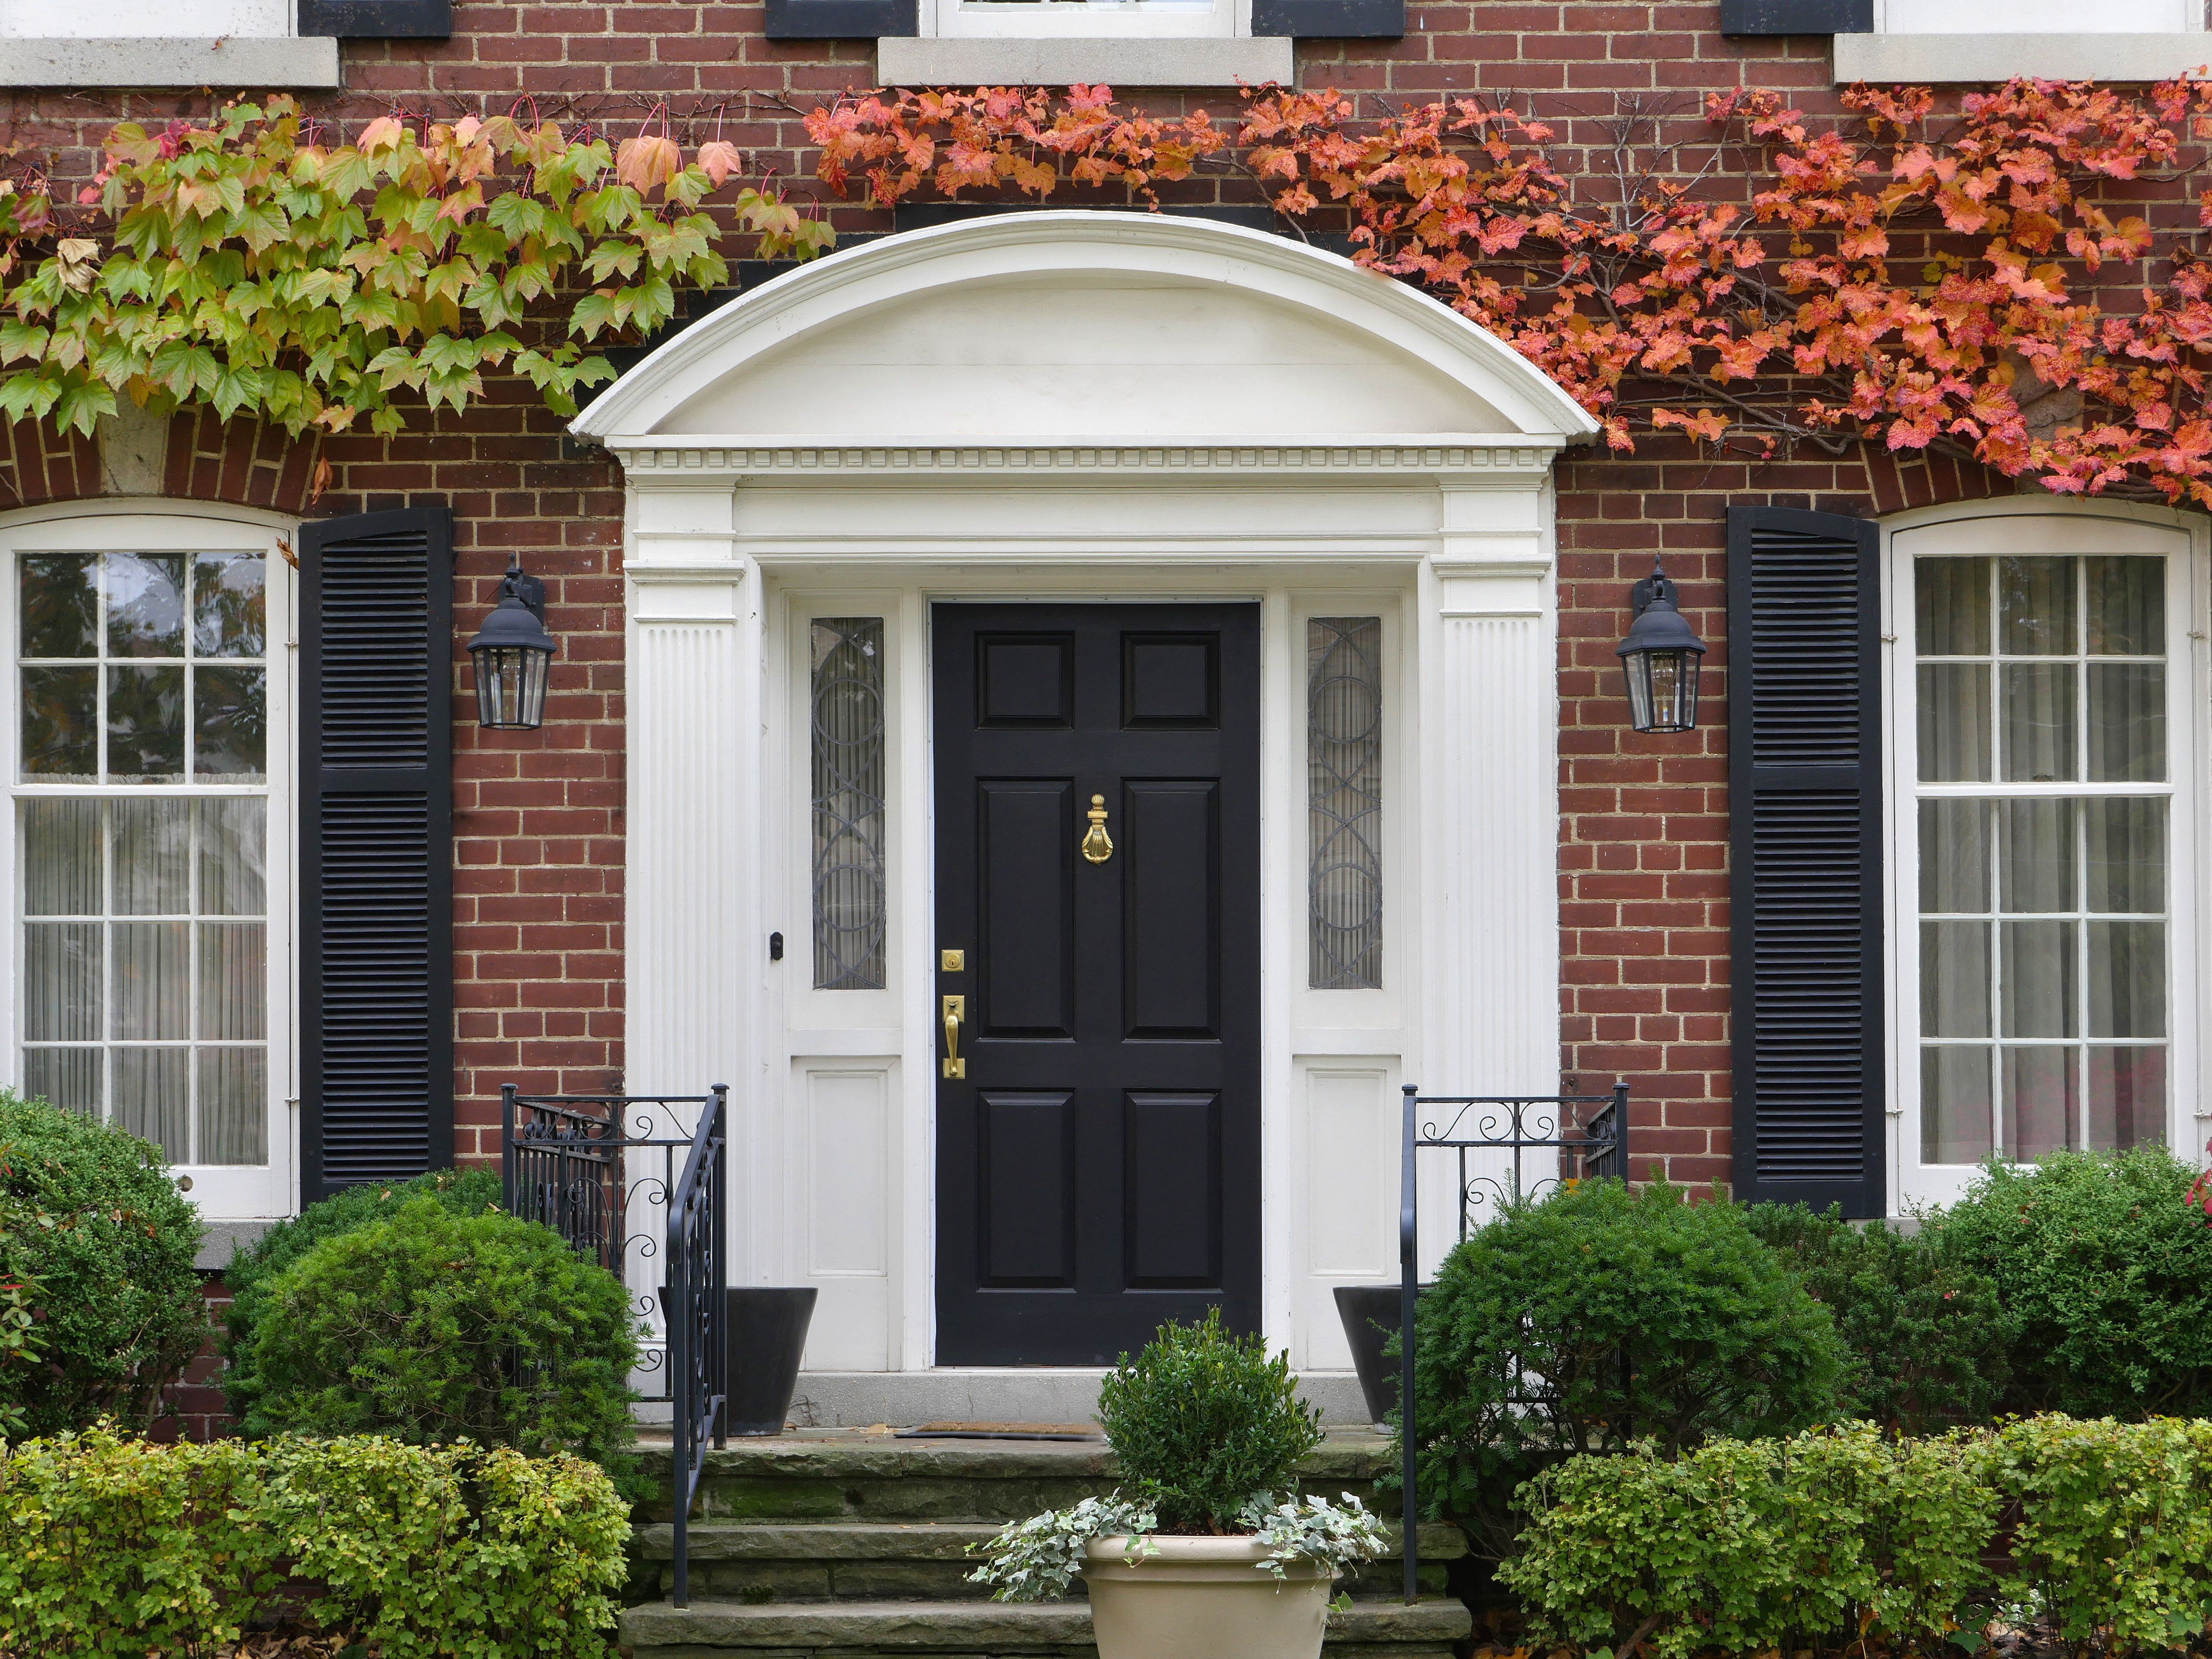 Pilasters Crossheads Dentil Trim And An Arch For Your Entryway The Diy Dream Easy To Install Low In Cost Front Door Trims Front Door Entryway Front Door